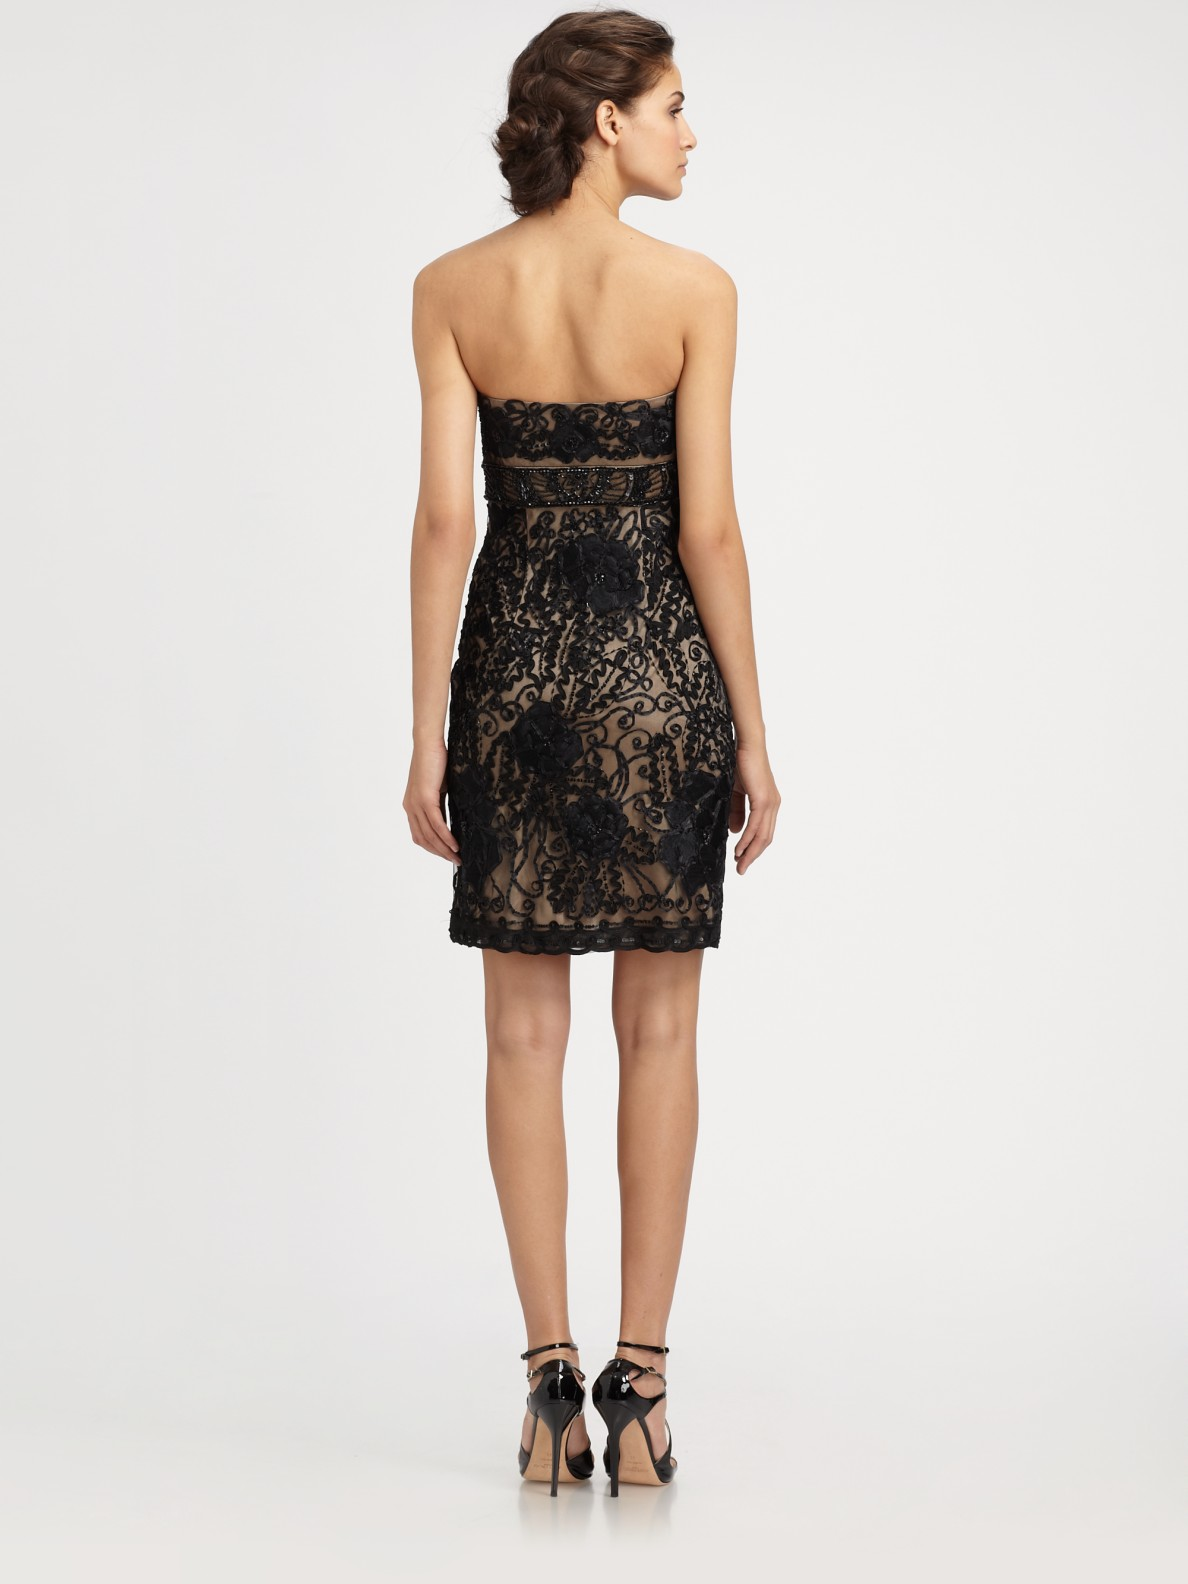 Sue wong Strapless Embroidered Dress in Black  Lyst